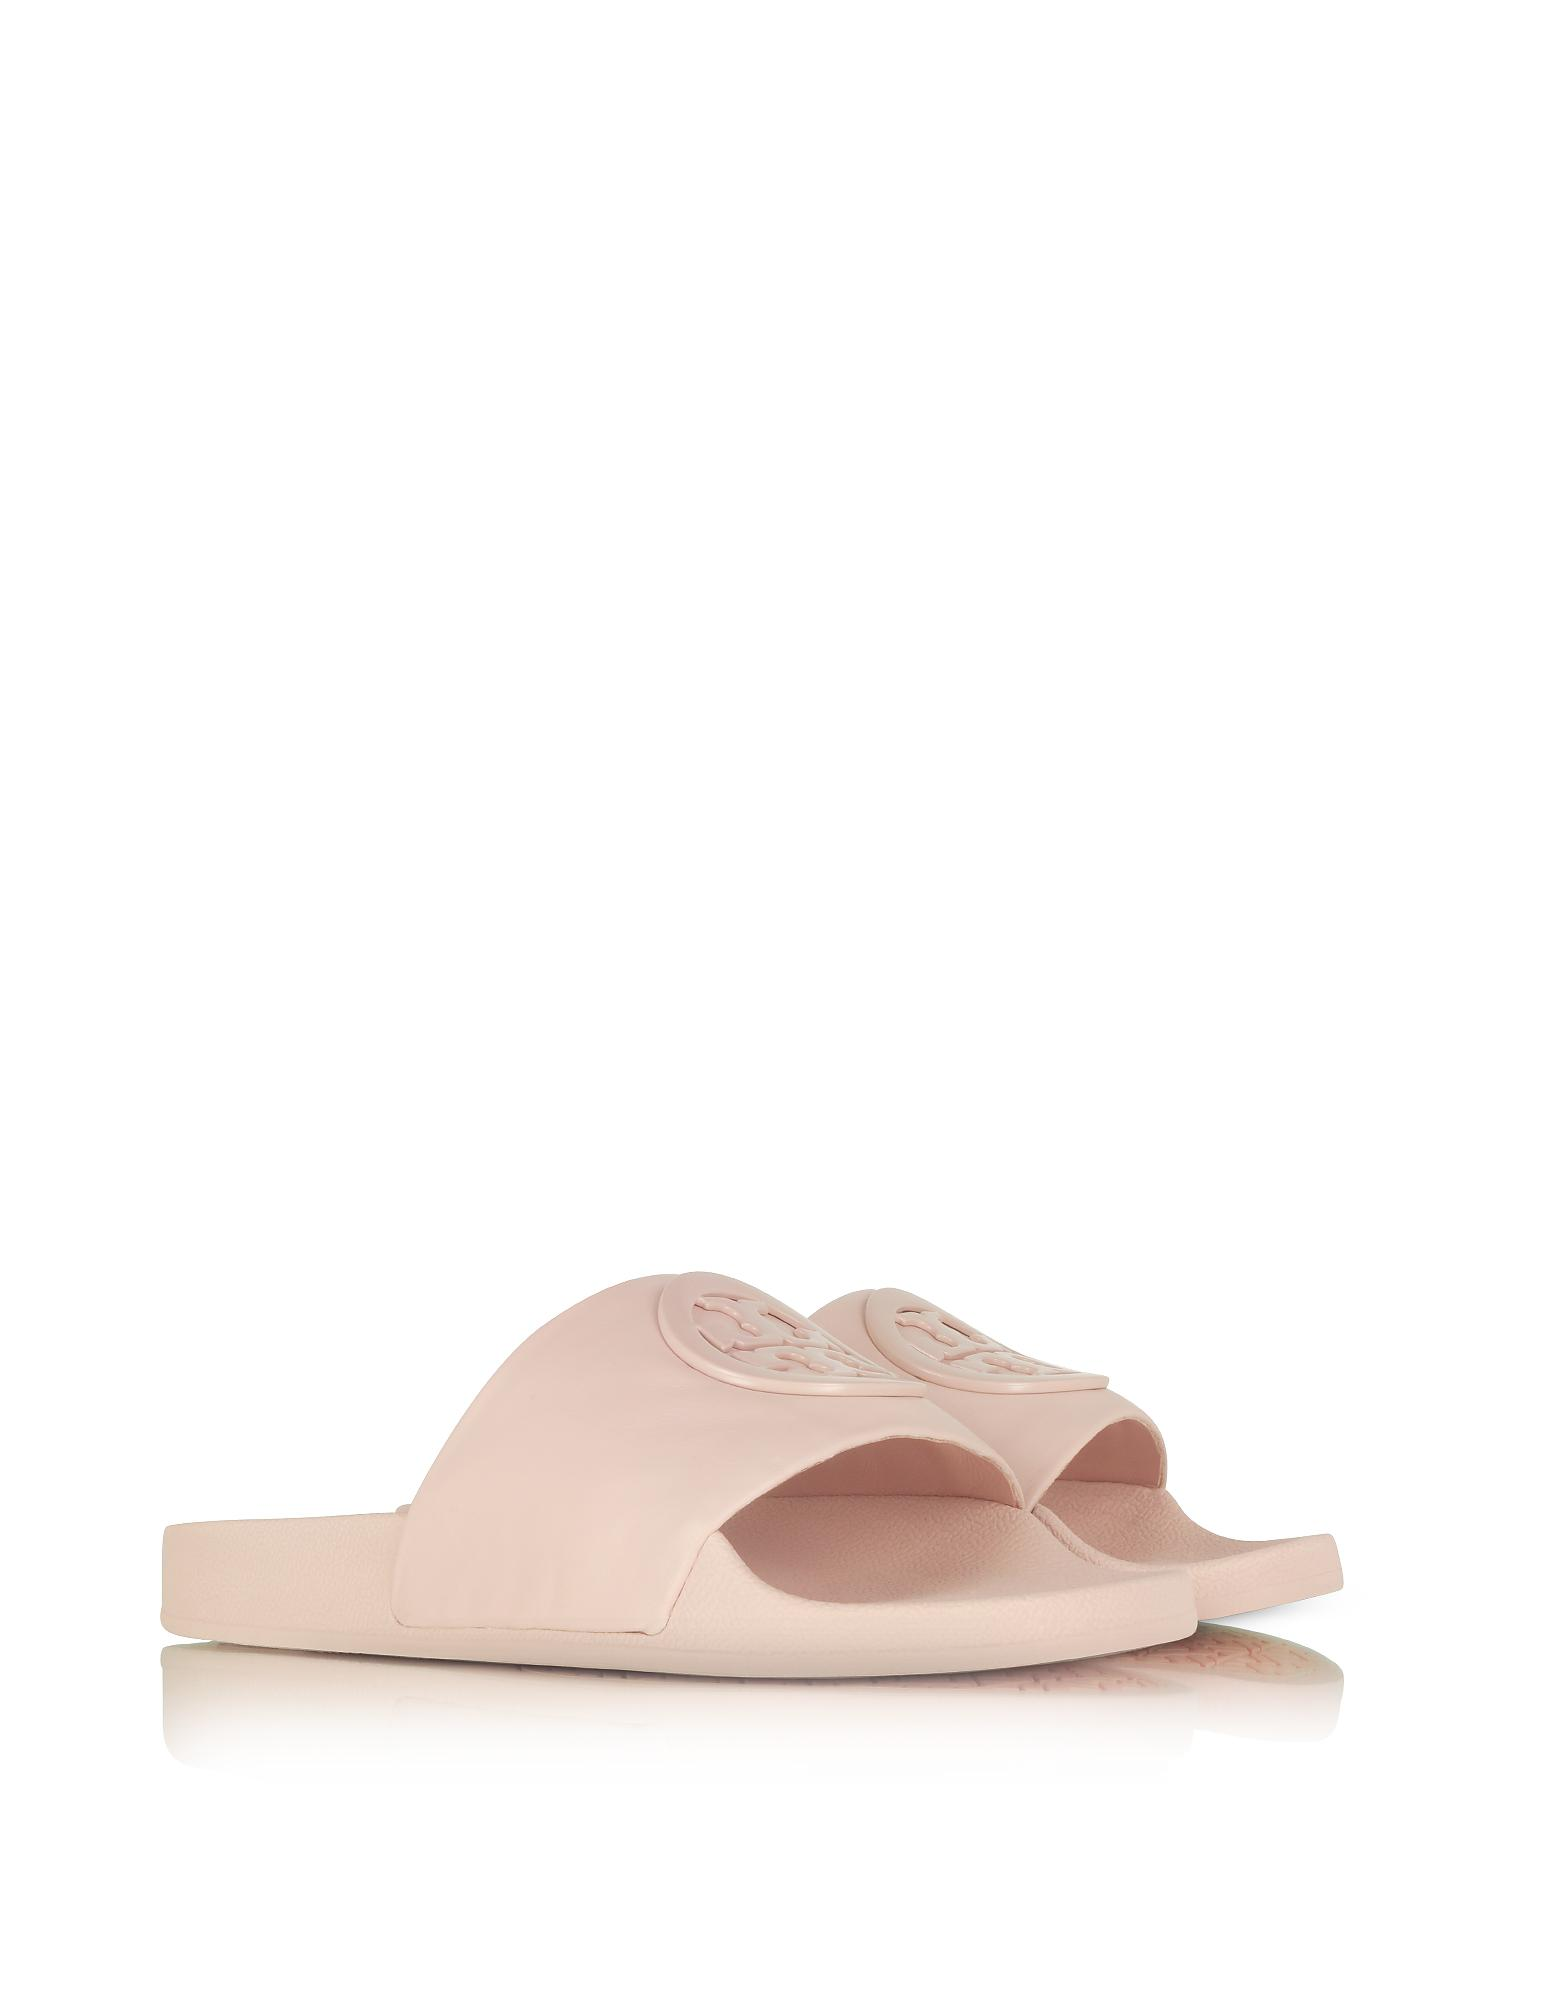 ed81070f0 Lyst - Tory Burch Shell Pink Leather Lina Slide Sandals in Pink